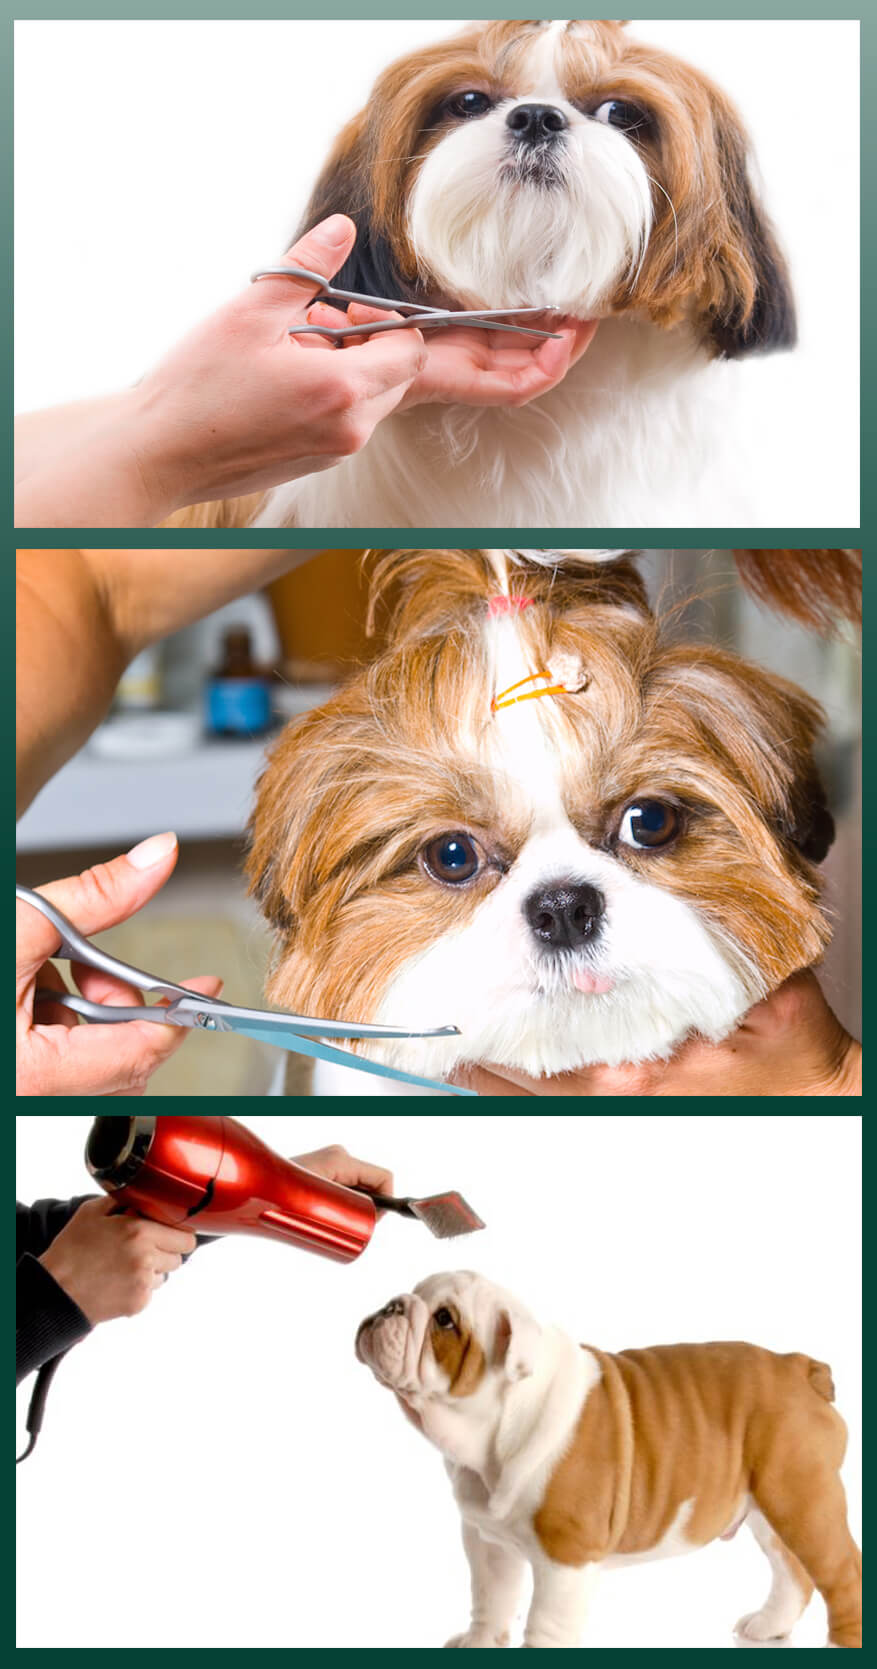 Use the premium Dog grooming kit to enhance your dog's cuteness